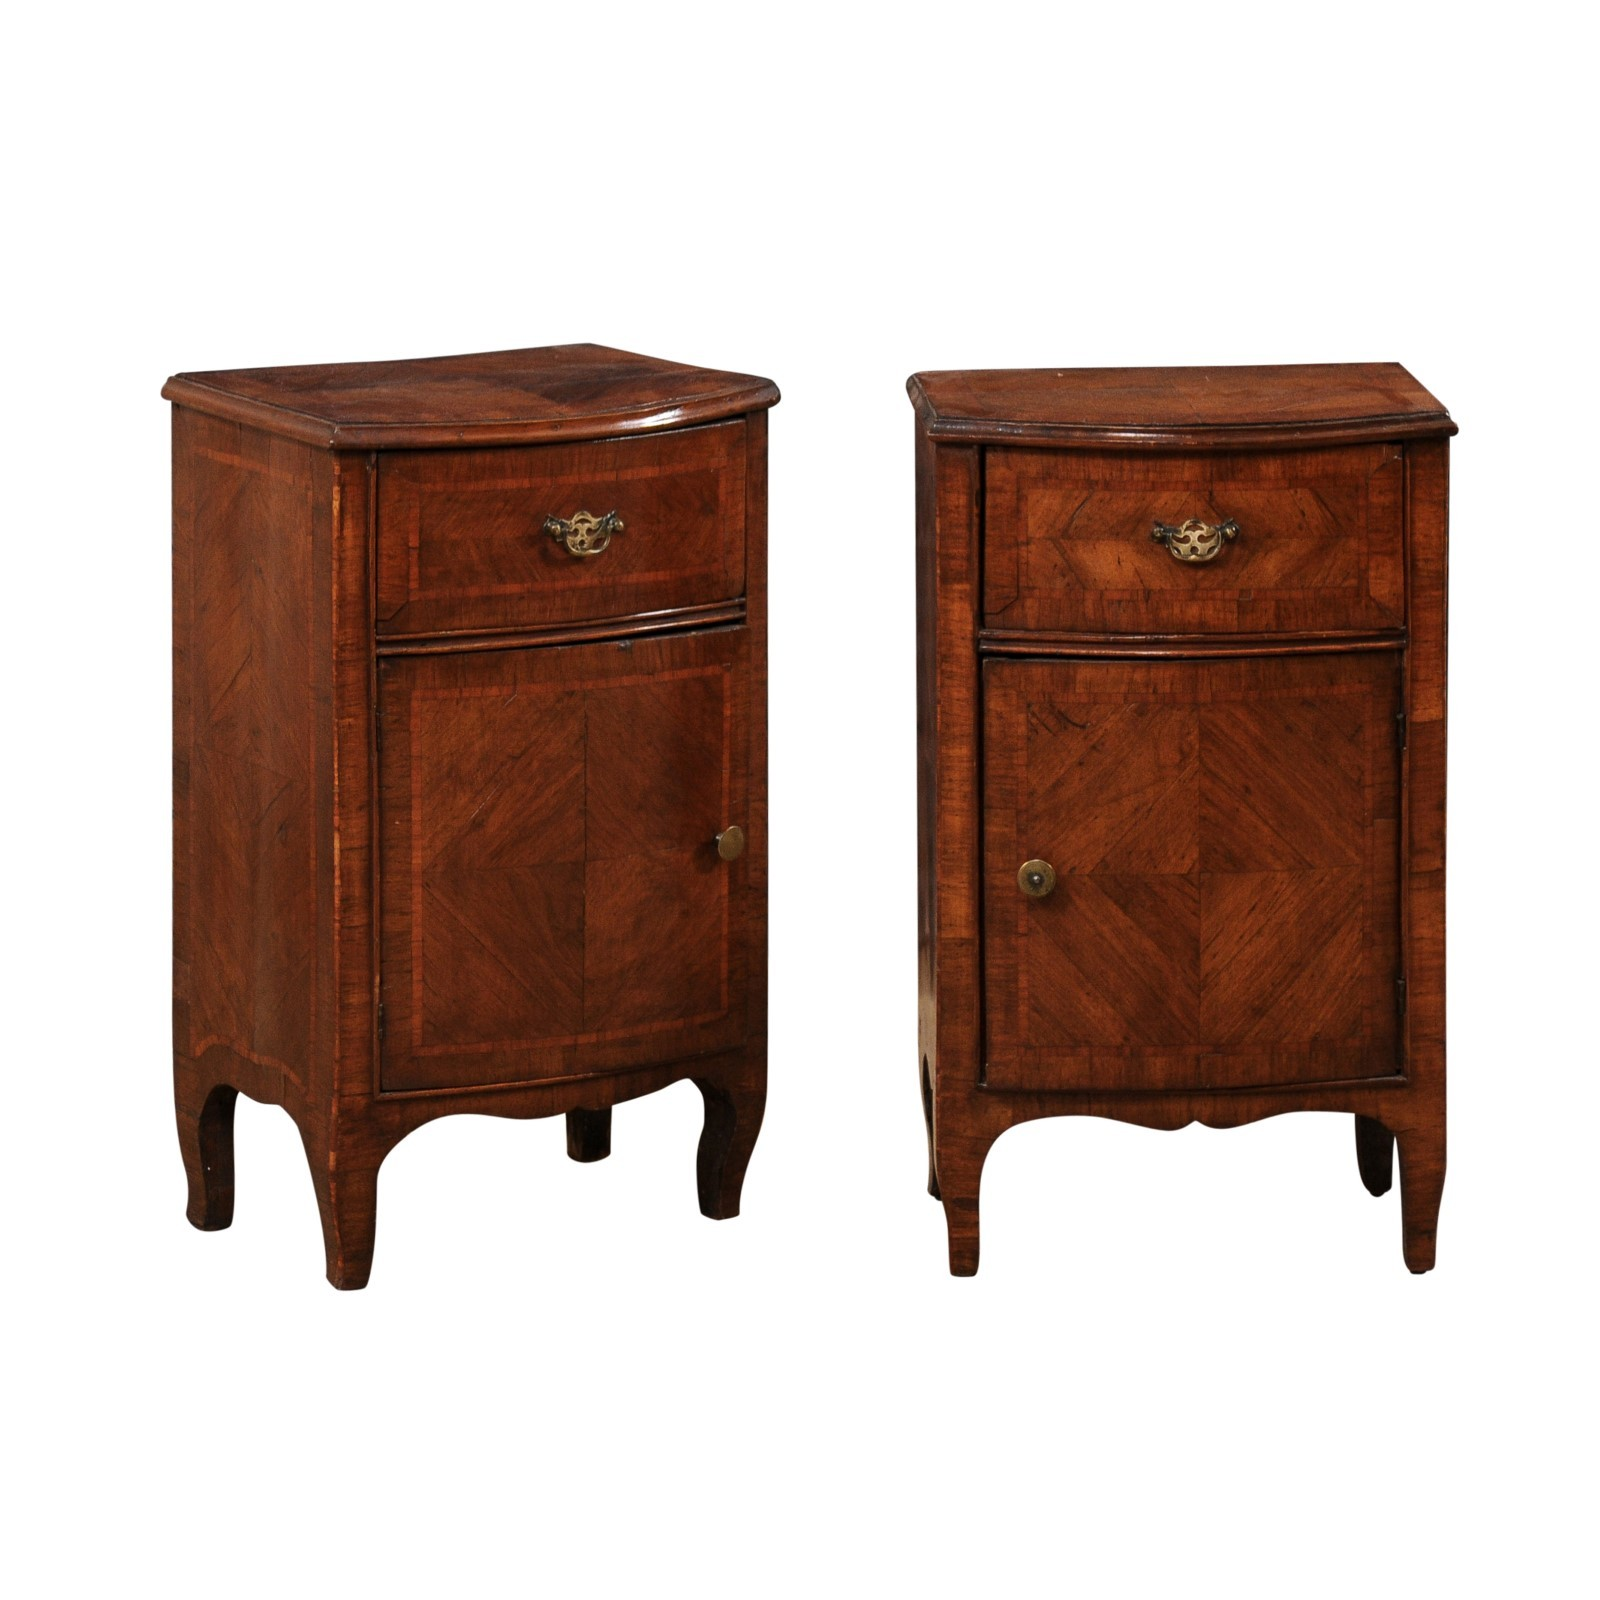 Antique Pair Petite Bow-Front Chests, Italy